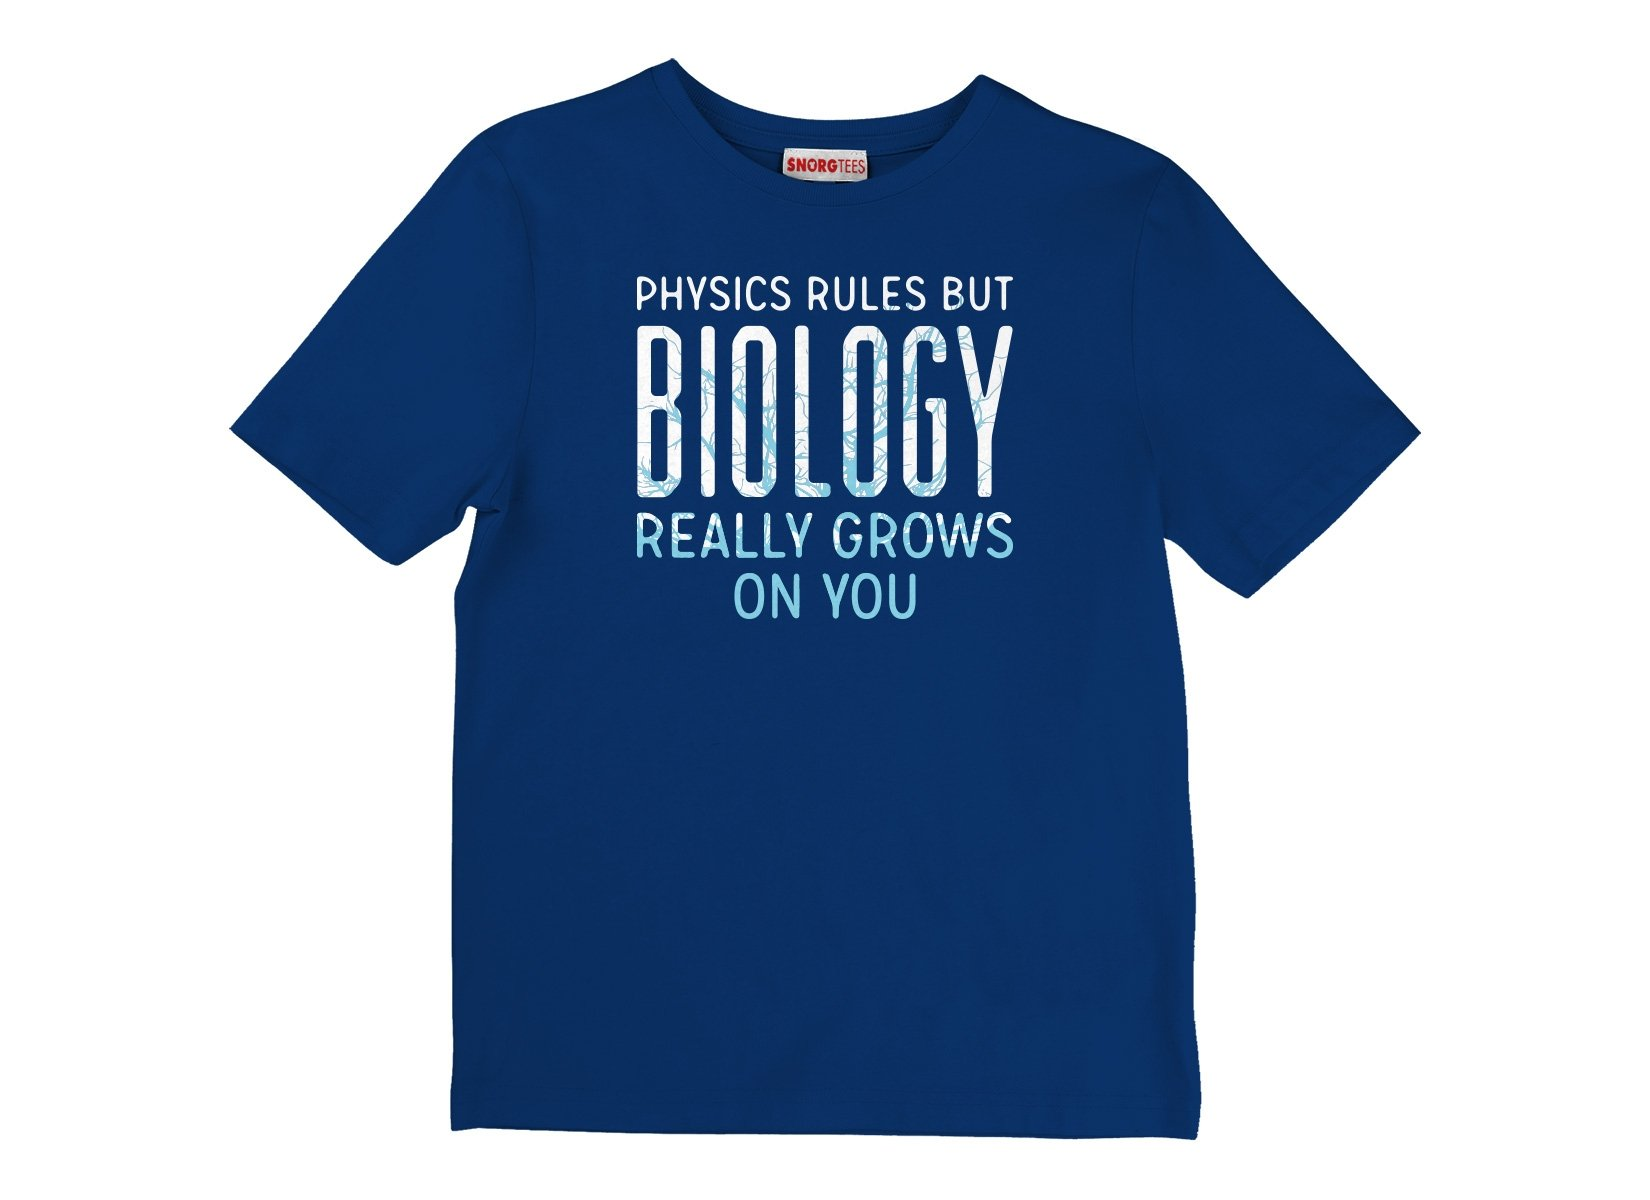 Biology Really Grows On You on Kids T-Shirt